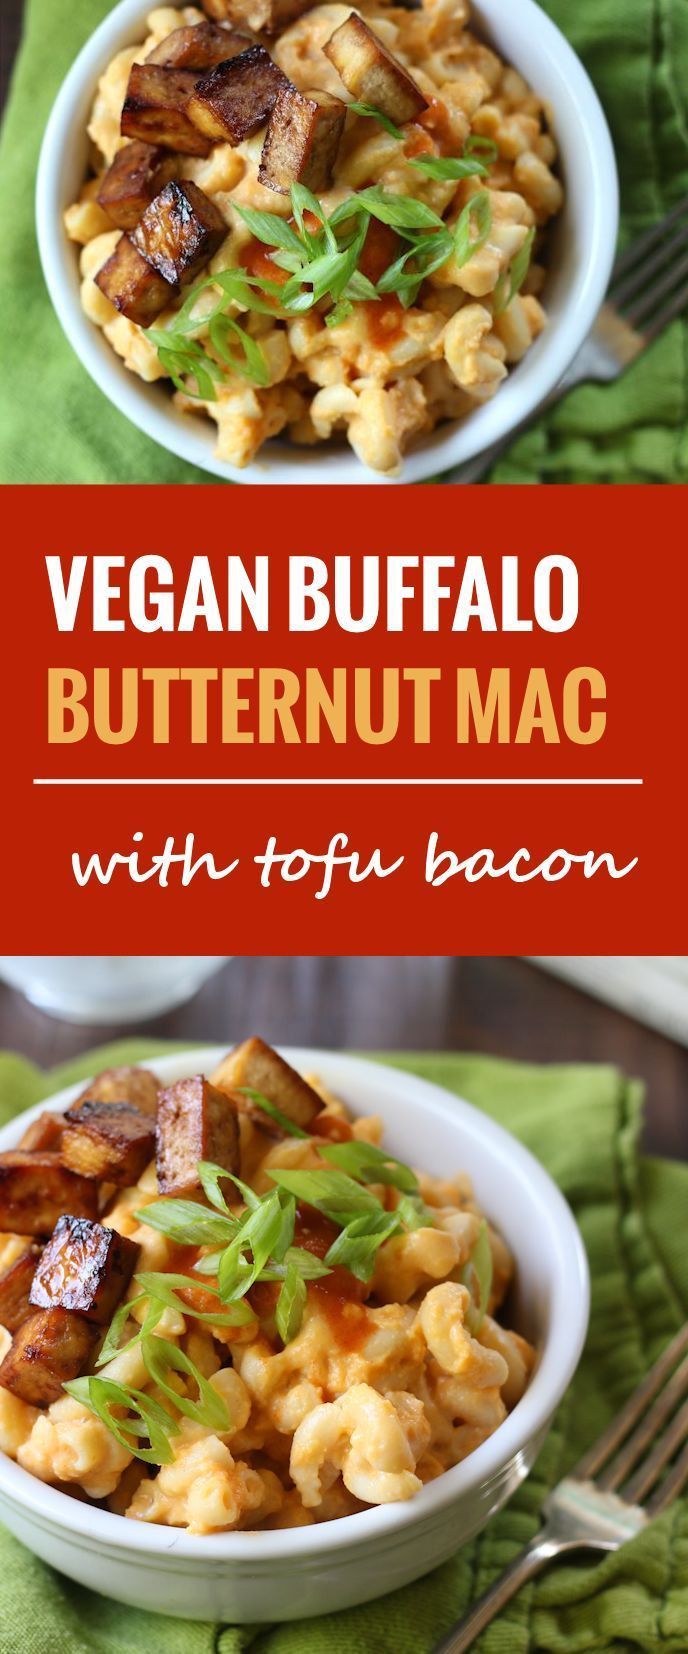 Pasta is drenched in silky butternut sauce spiked with cayenne pepper to make this creamy vegan Buffalo butternut mac that's served with smoky tofu bacon.